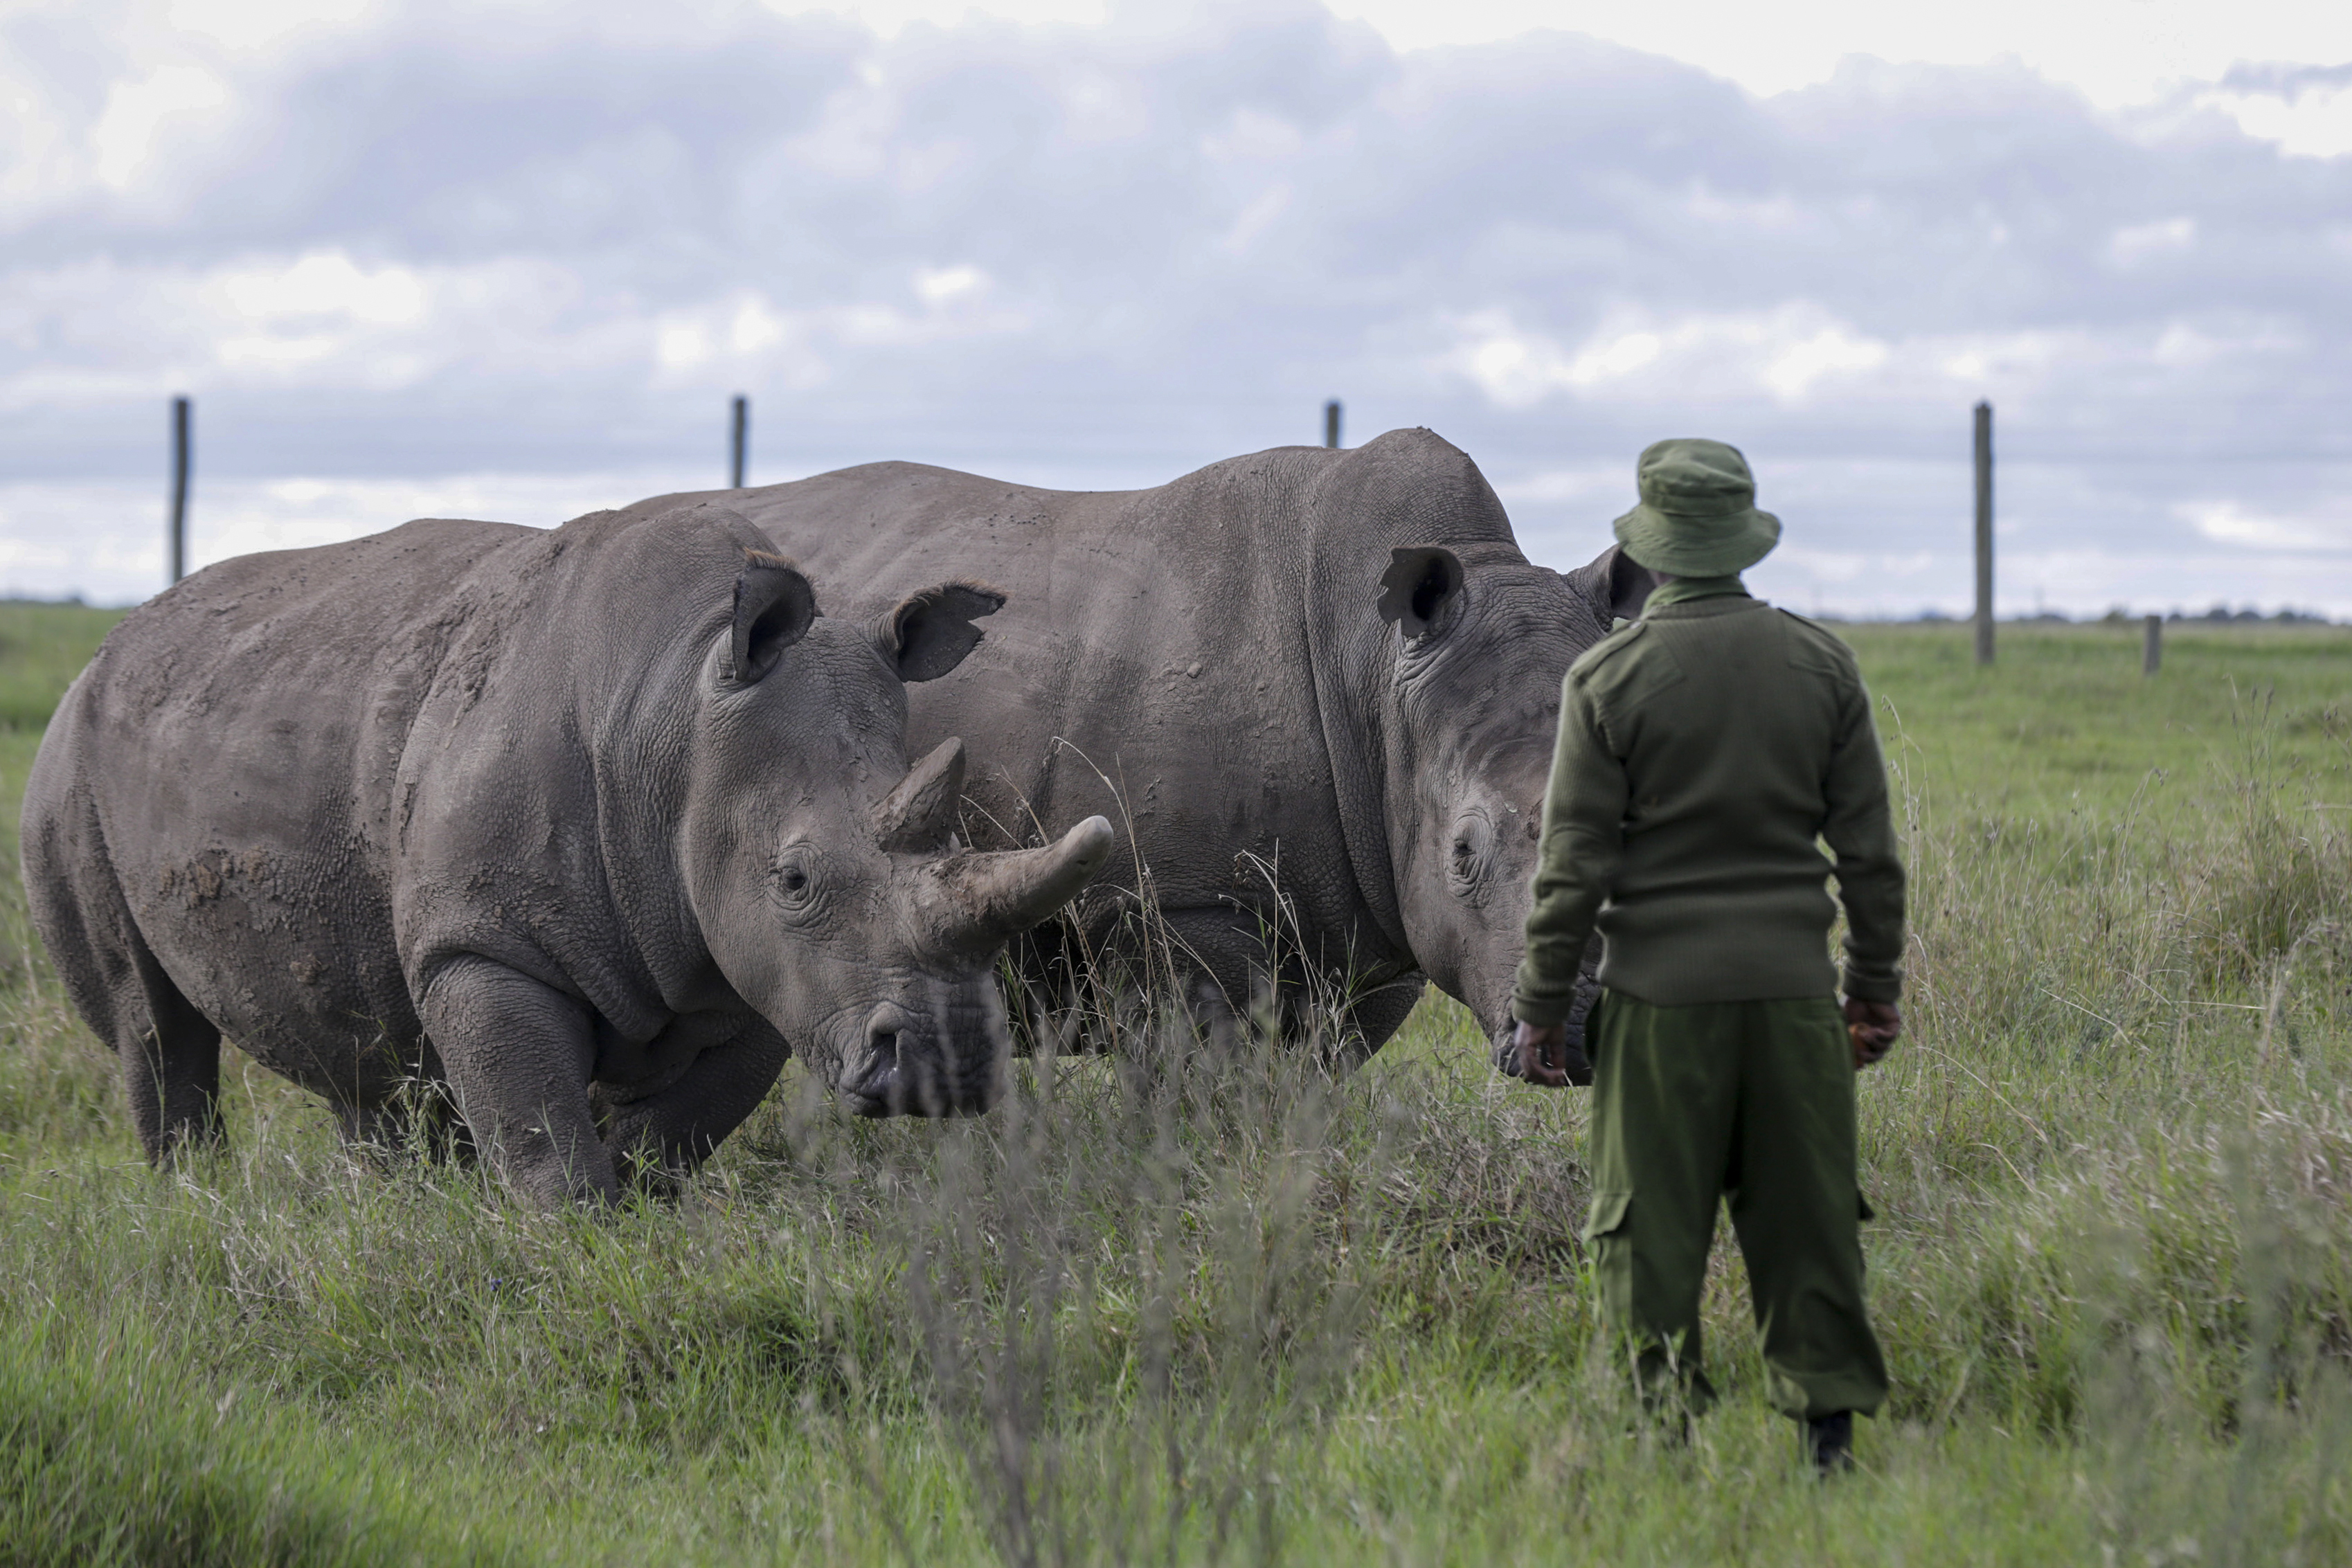 In this Friday, May 1, 2020 file photo, a ranger observes the last remaining two northern white rhinos Fatu, left, and Najin, right, at the Ol Pejeta conservancy in Kenya. Groundbreaking work to keep alive the nearly extinct northern white rhino - population, two - by in-vitro fertilization has been hampered by travel restrictions caused by the new coronavirus.